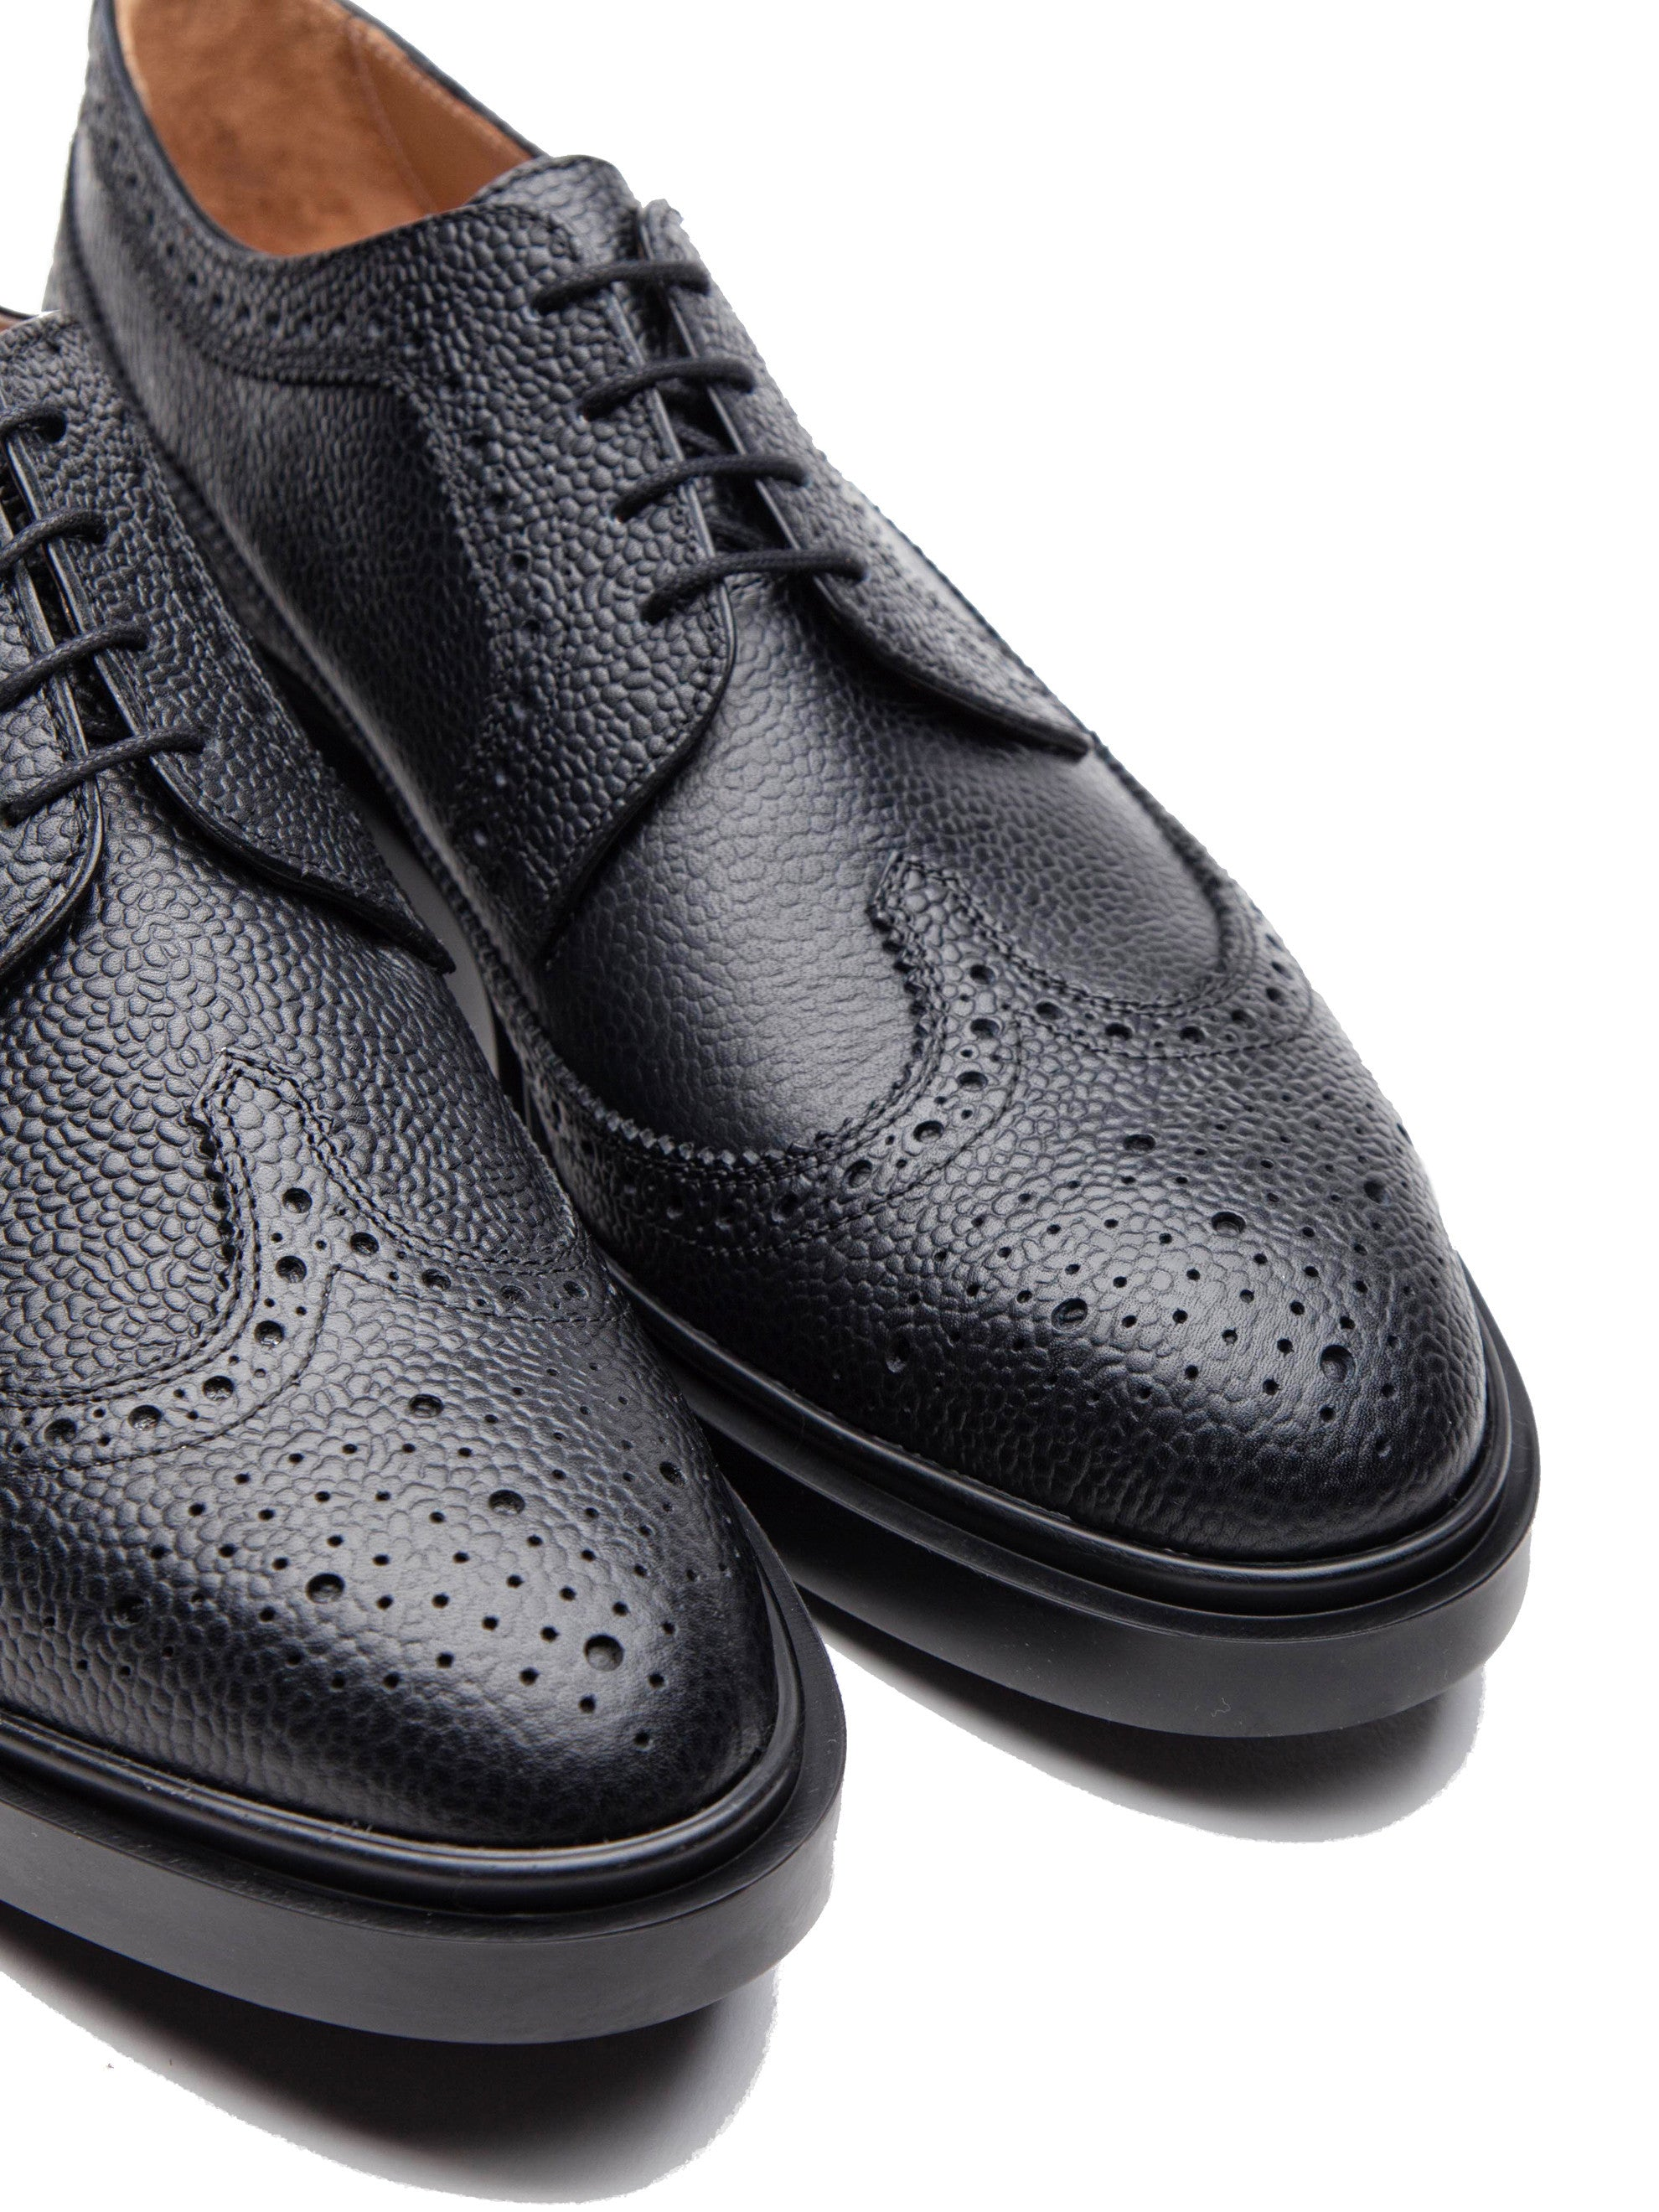 Black Classic Long Wing Brogue (Lightweight Rubber Sole/Pebble Grain) 2